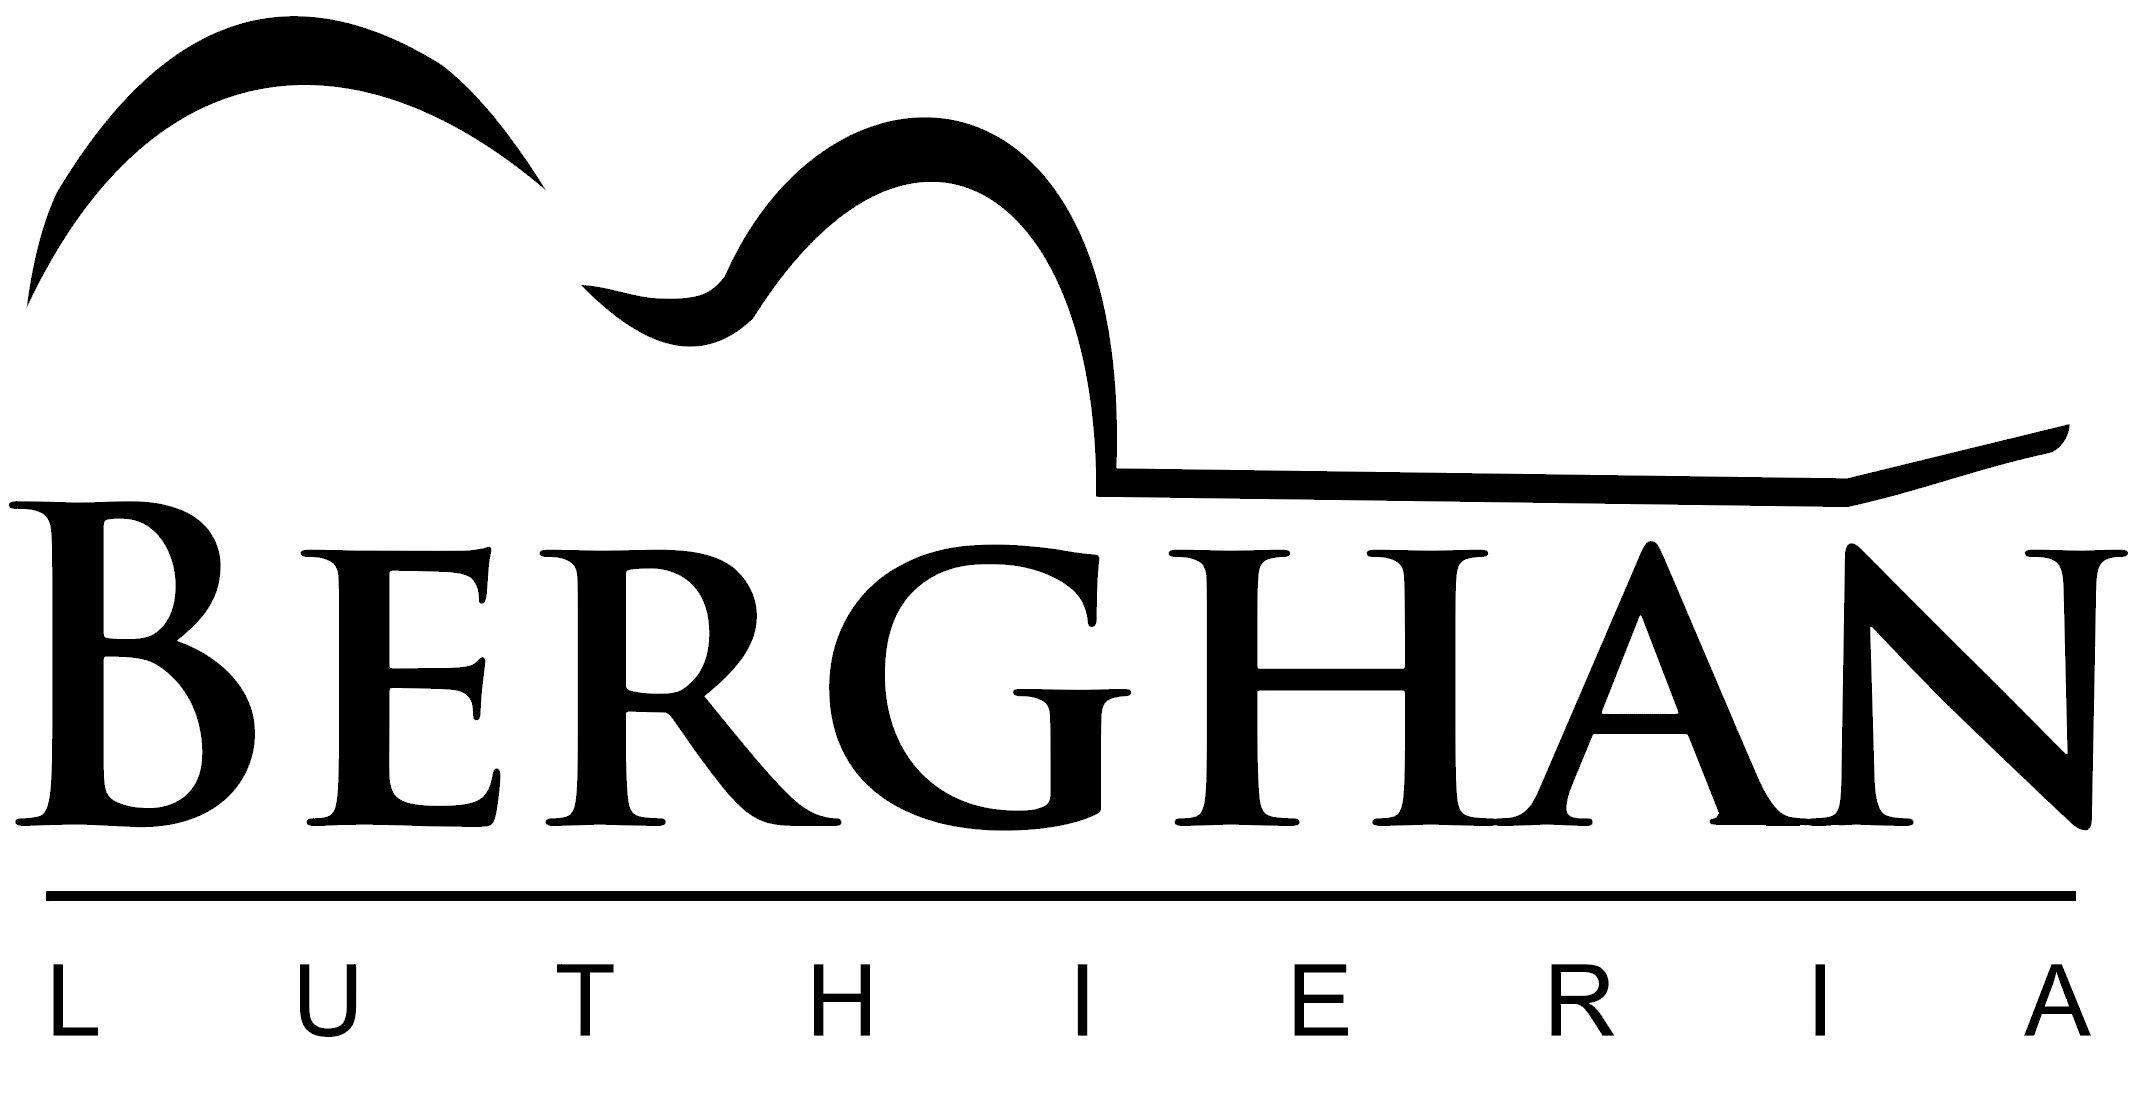 Berghan Luthieria